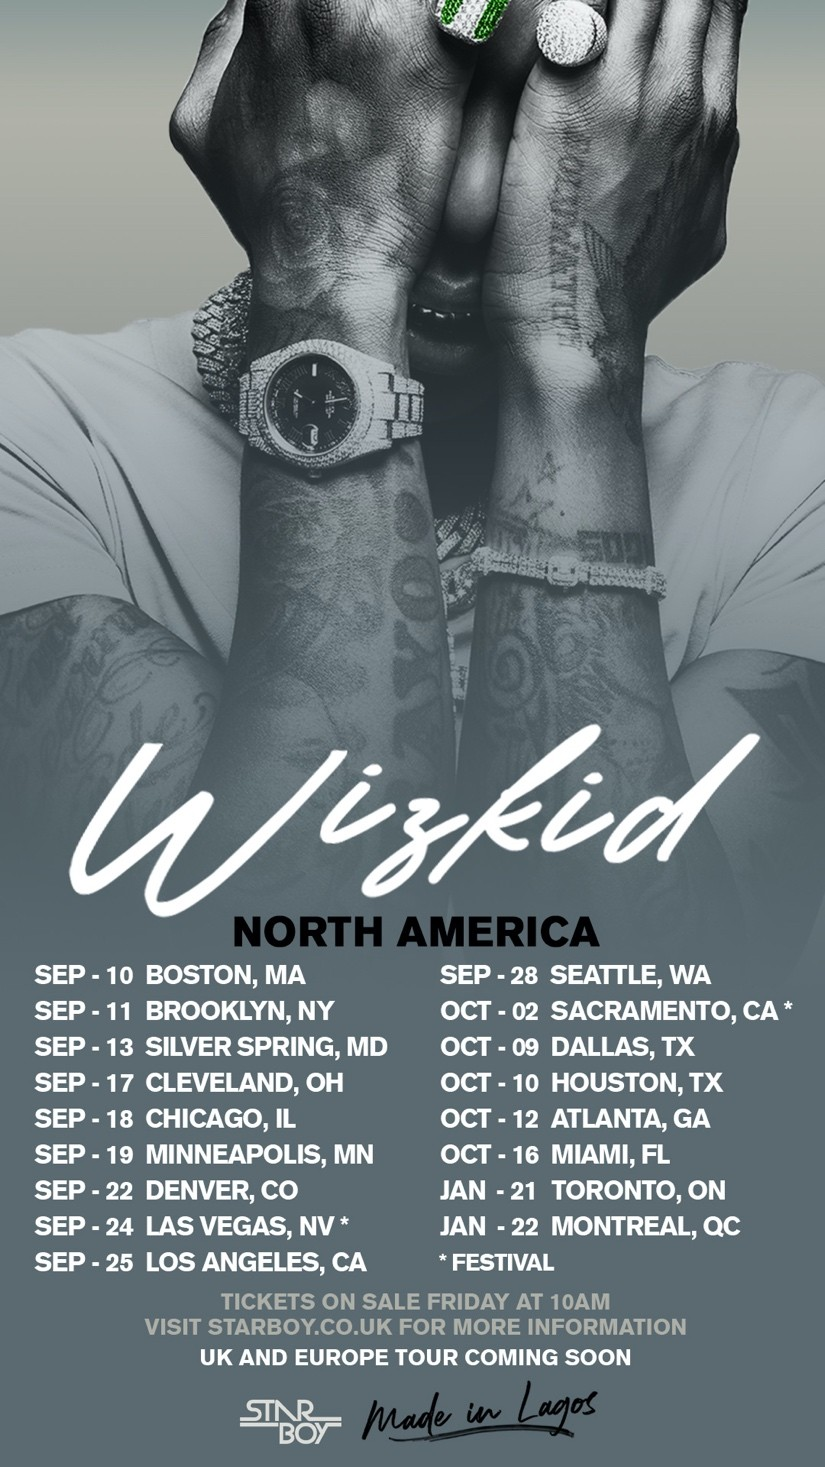 WIZKID ANNOUNCES HIS HIGHLY ANTICIPATED MADE IN LAGOS NORTH AMERICAN TOUR  FOLLOWING THE CRITICALLY ACCLAIMED MADE IN LAGOS ALBUM